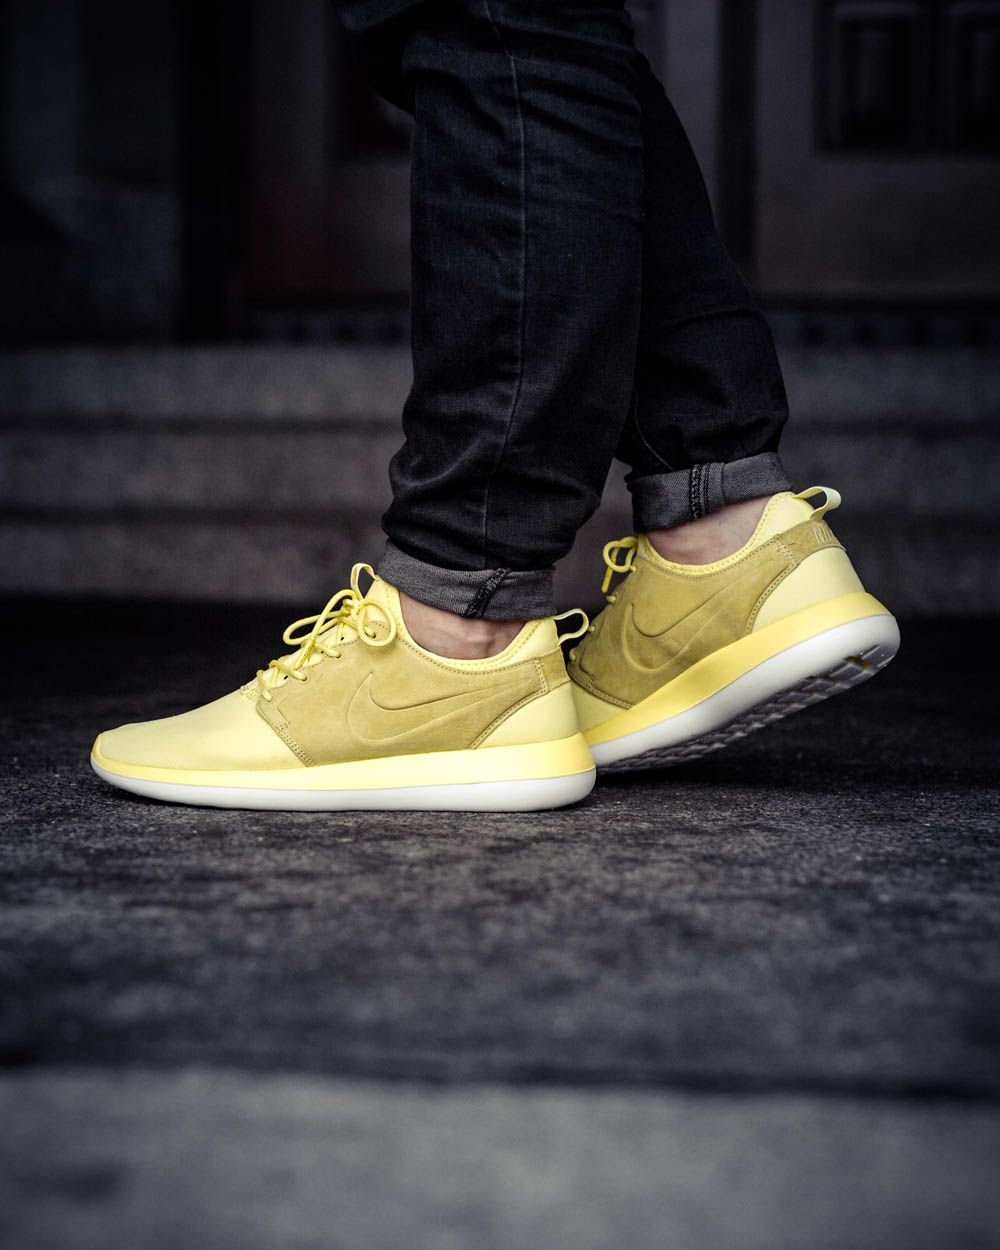 NIKE Roshe Two Breeze 'Lemon Chiffon'